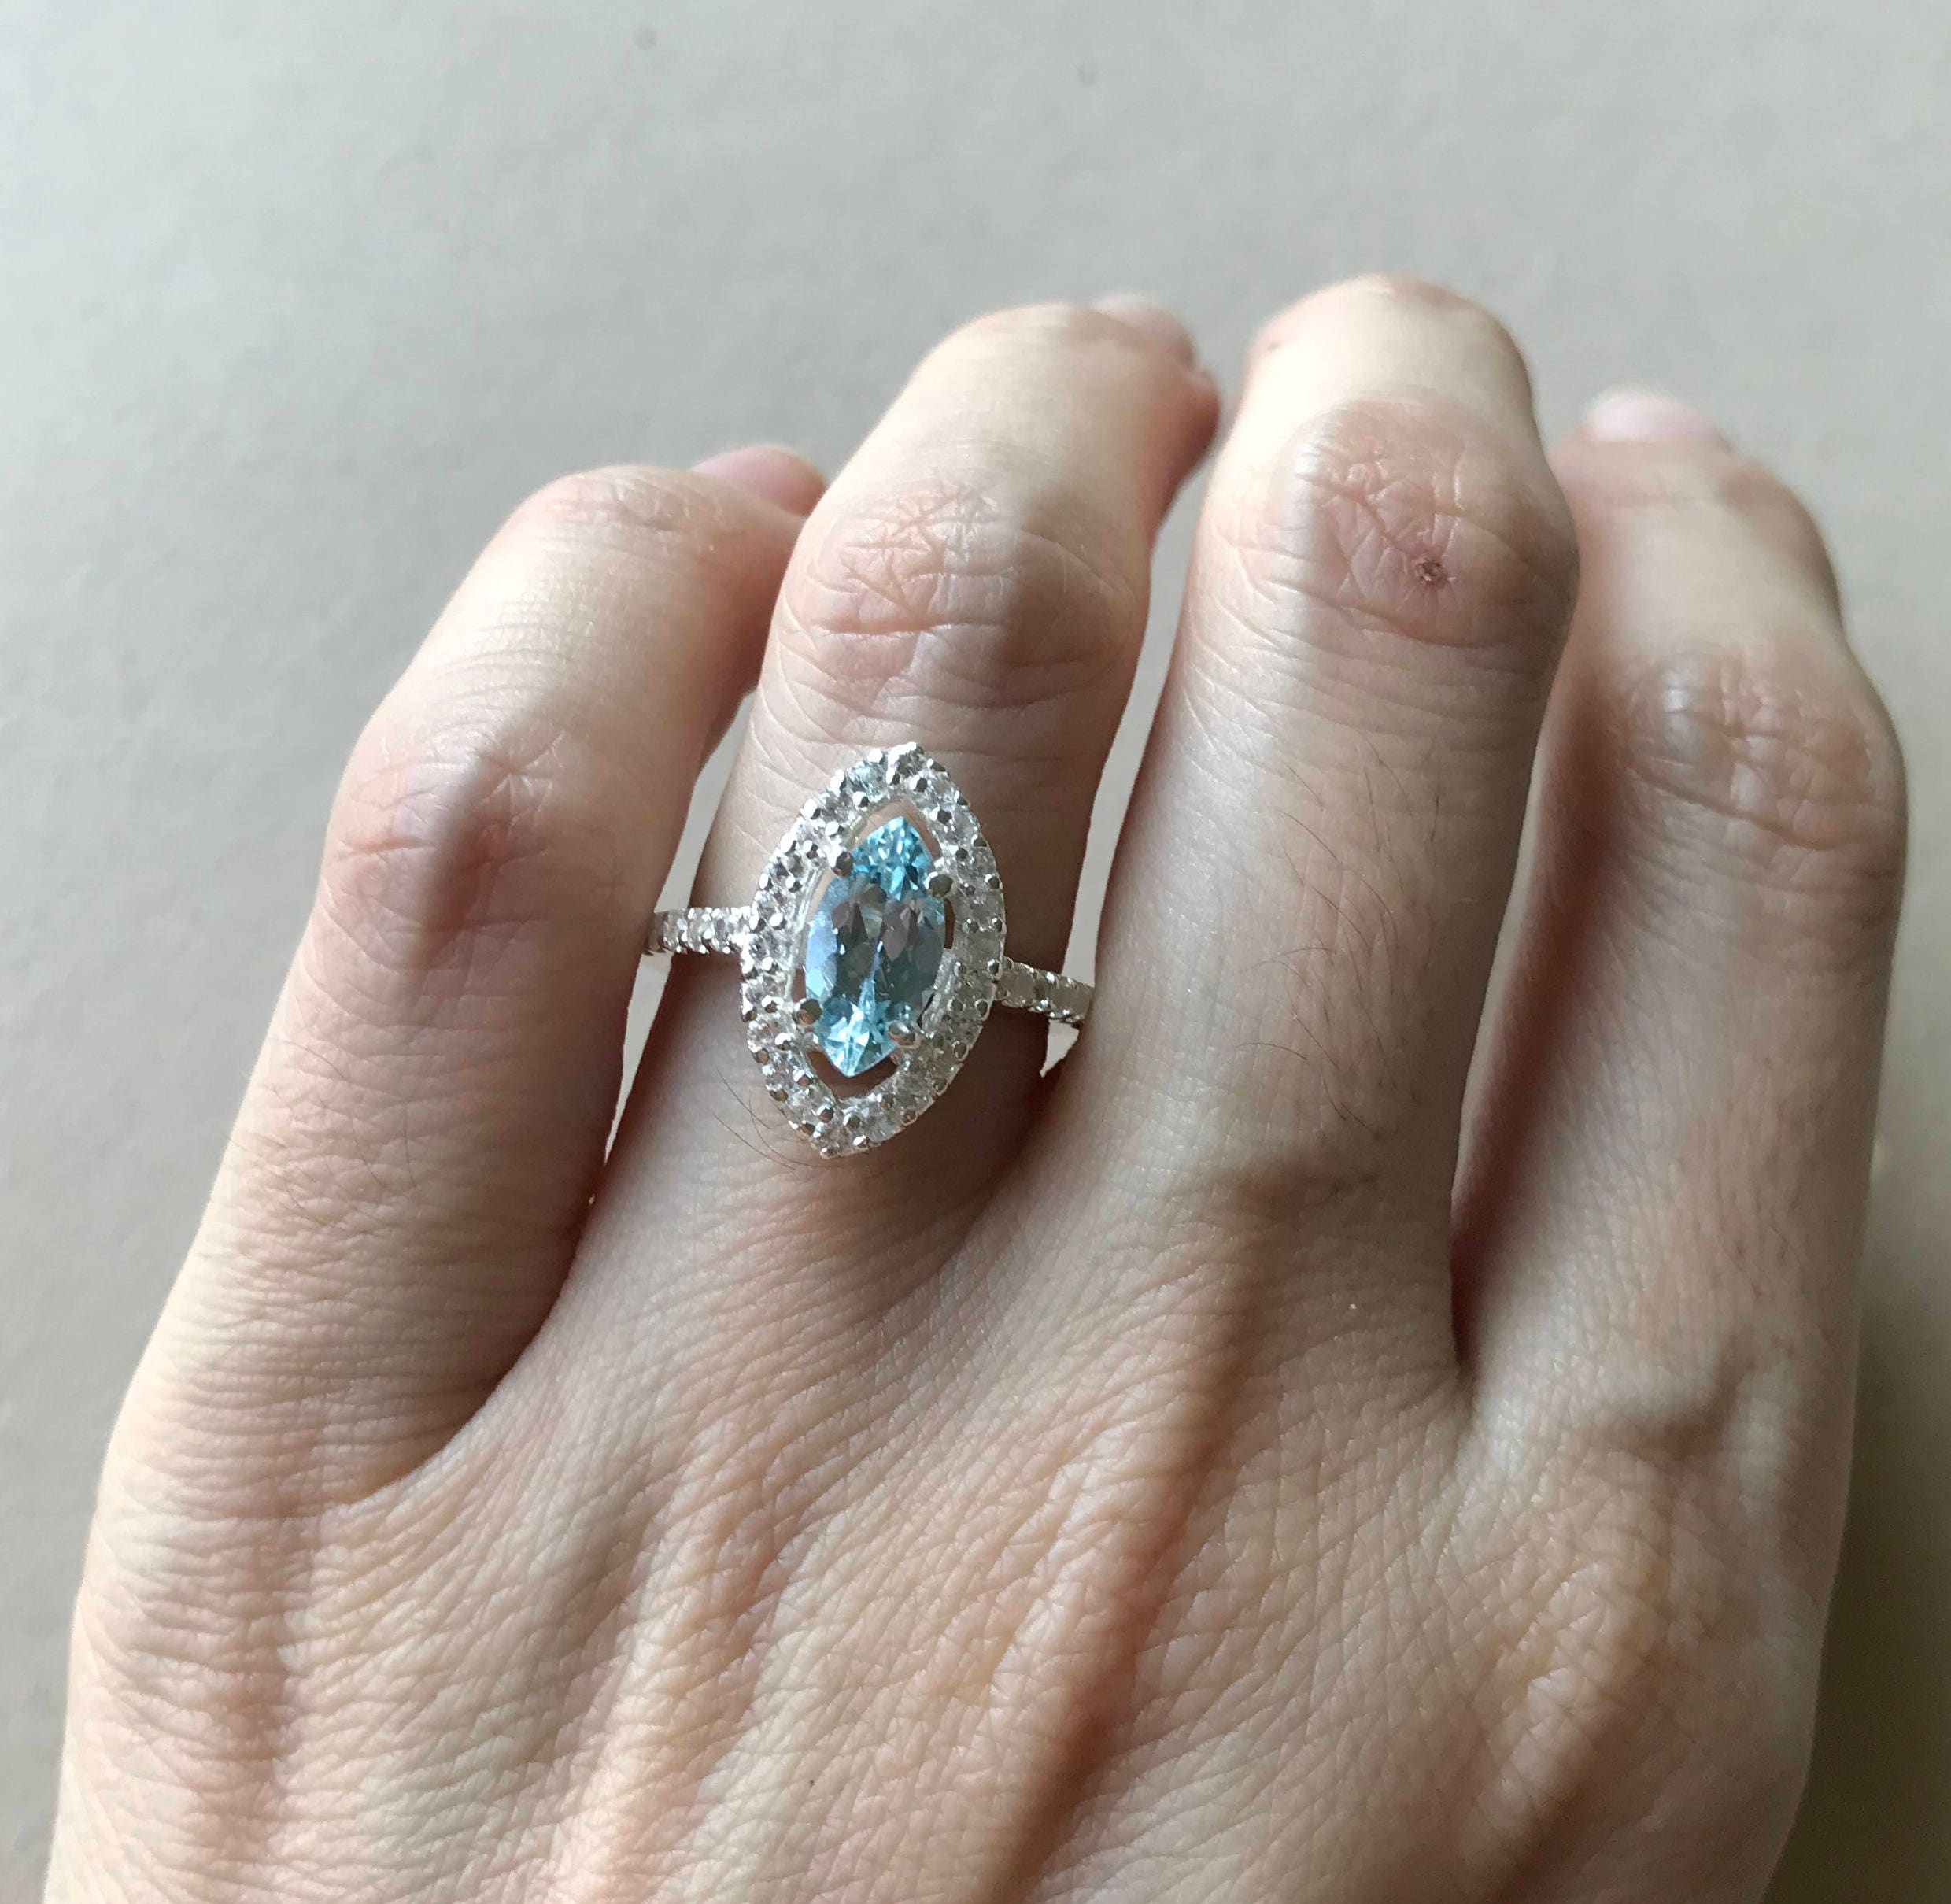 aqua ring new for tiffany aquamarine img wedding diamond marine rings newlyweds